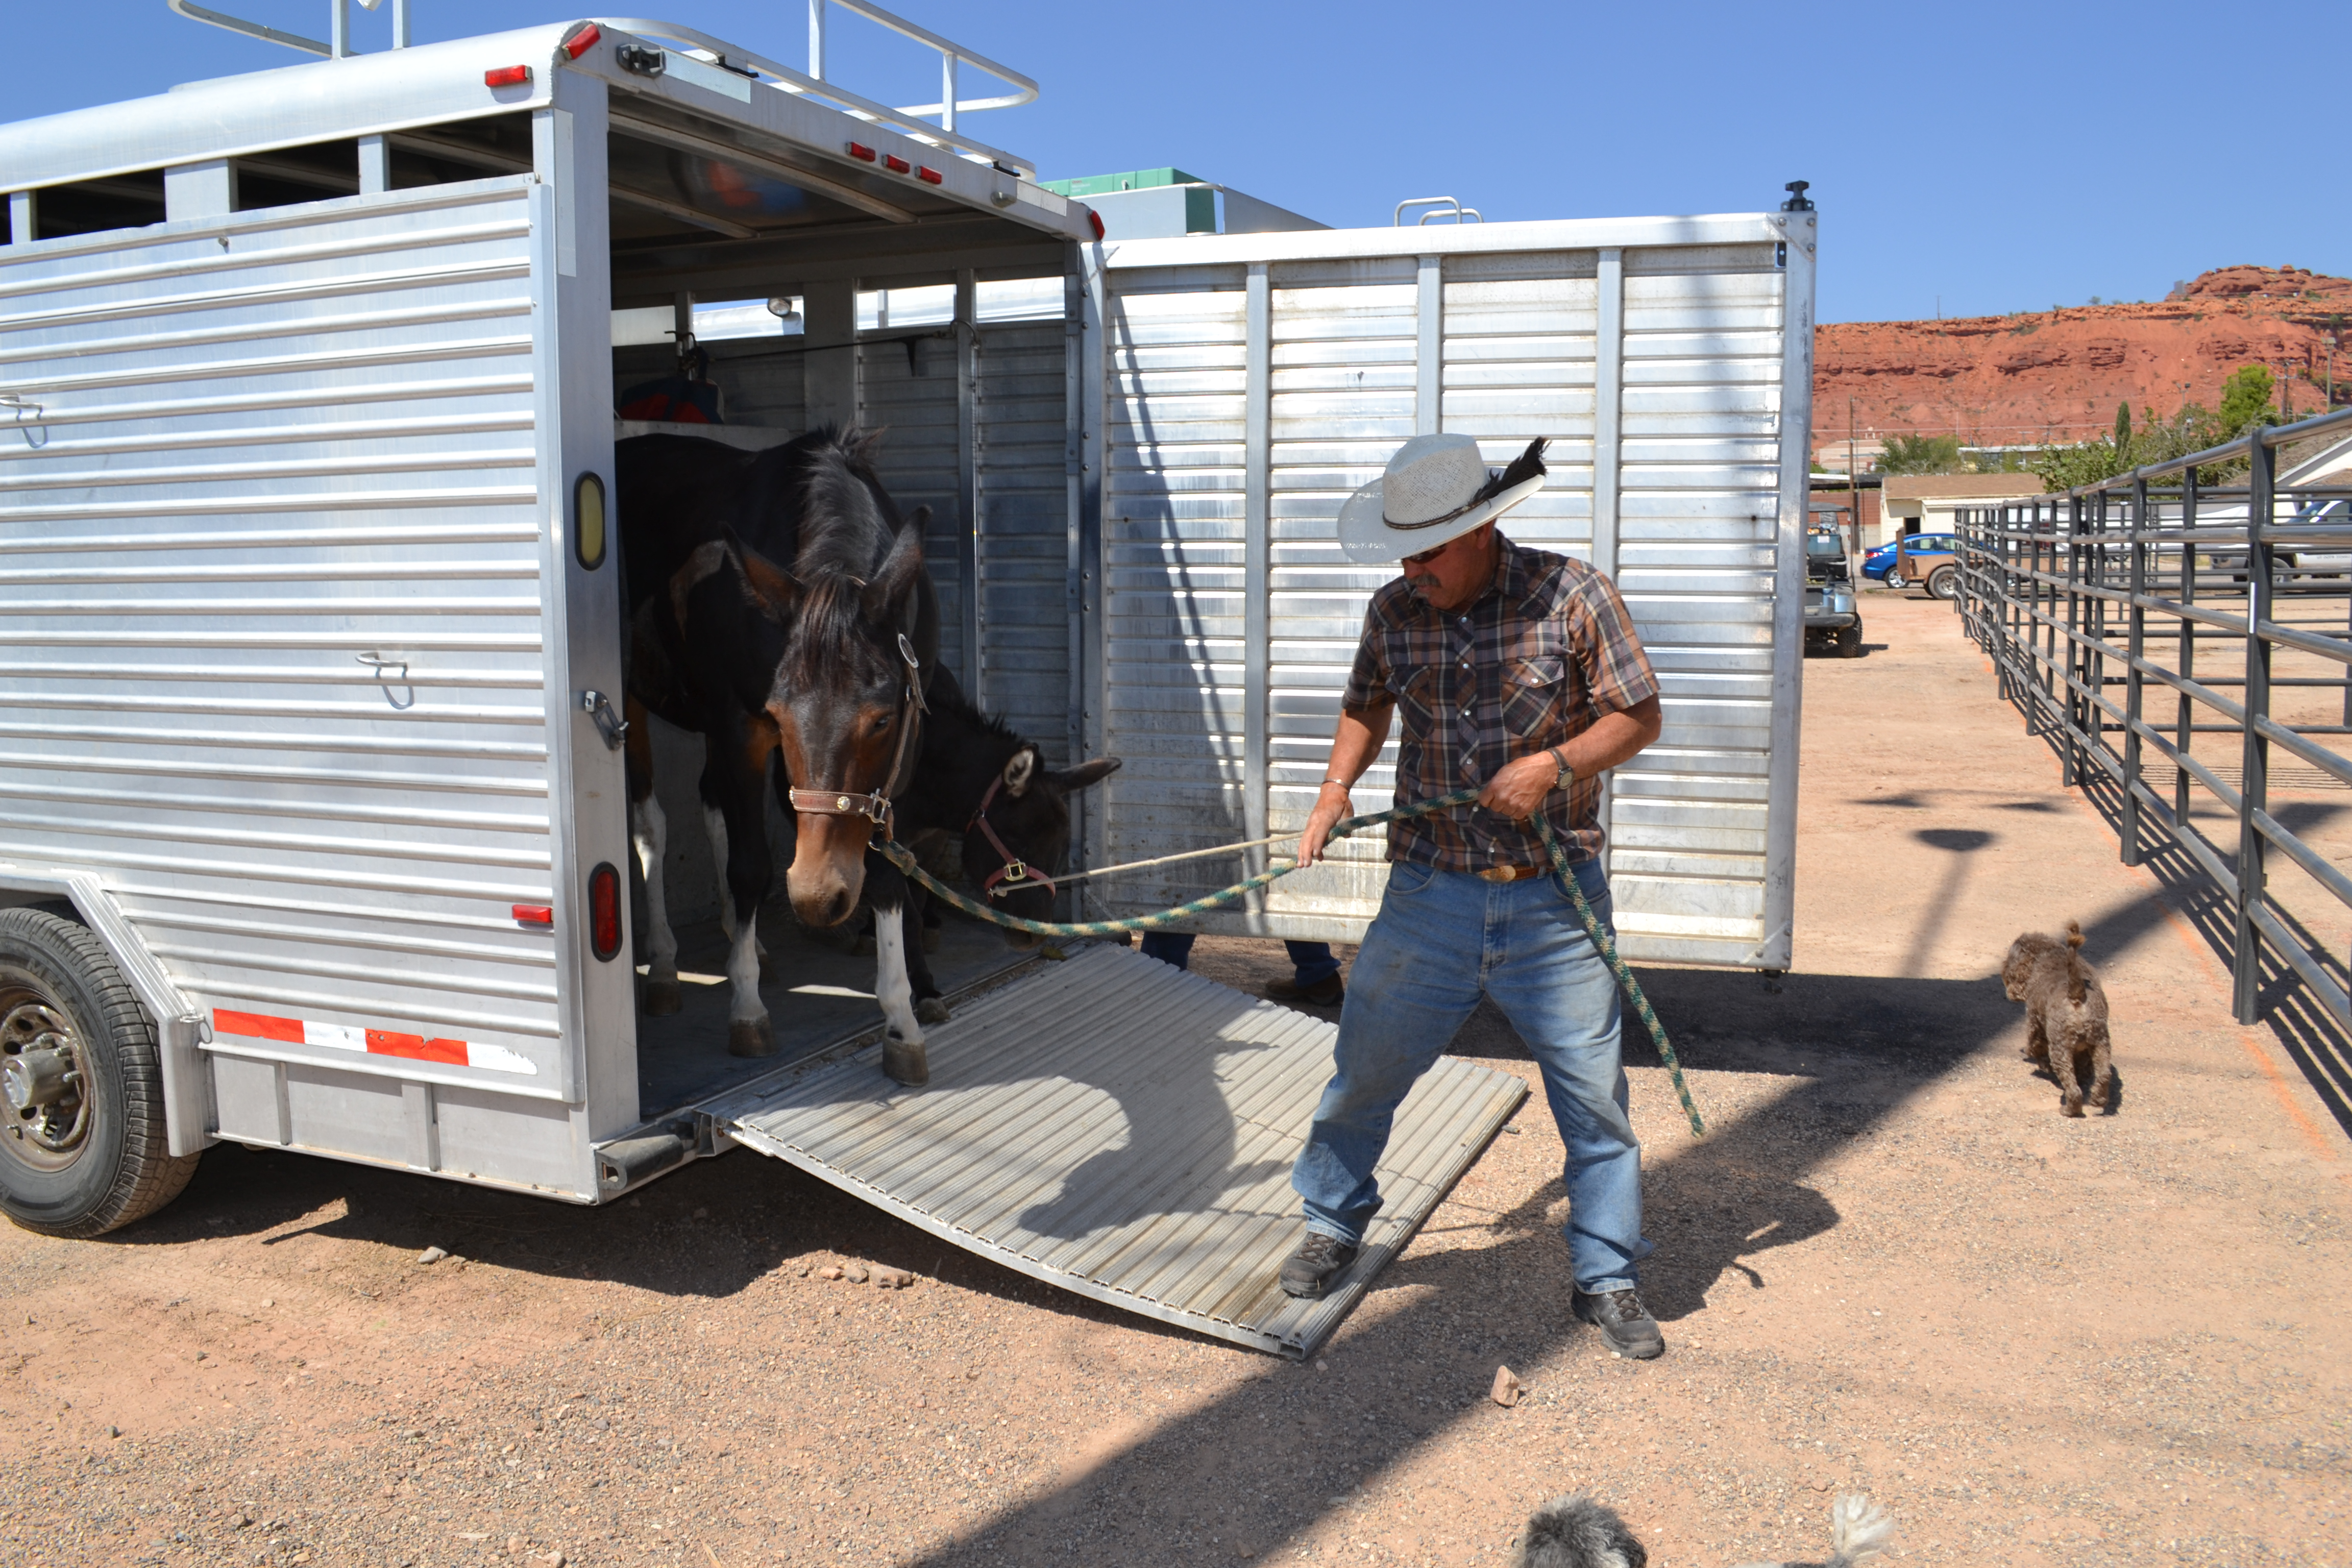 Randee Munns was the first arrival to unload stock at the Dixie Sunbowl ahead of the weekend's Dixie Roundup Rodeo, St. George, Utah, Sept. 12, 2016 | Photo by Joseph Witham, St George News